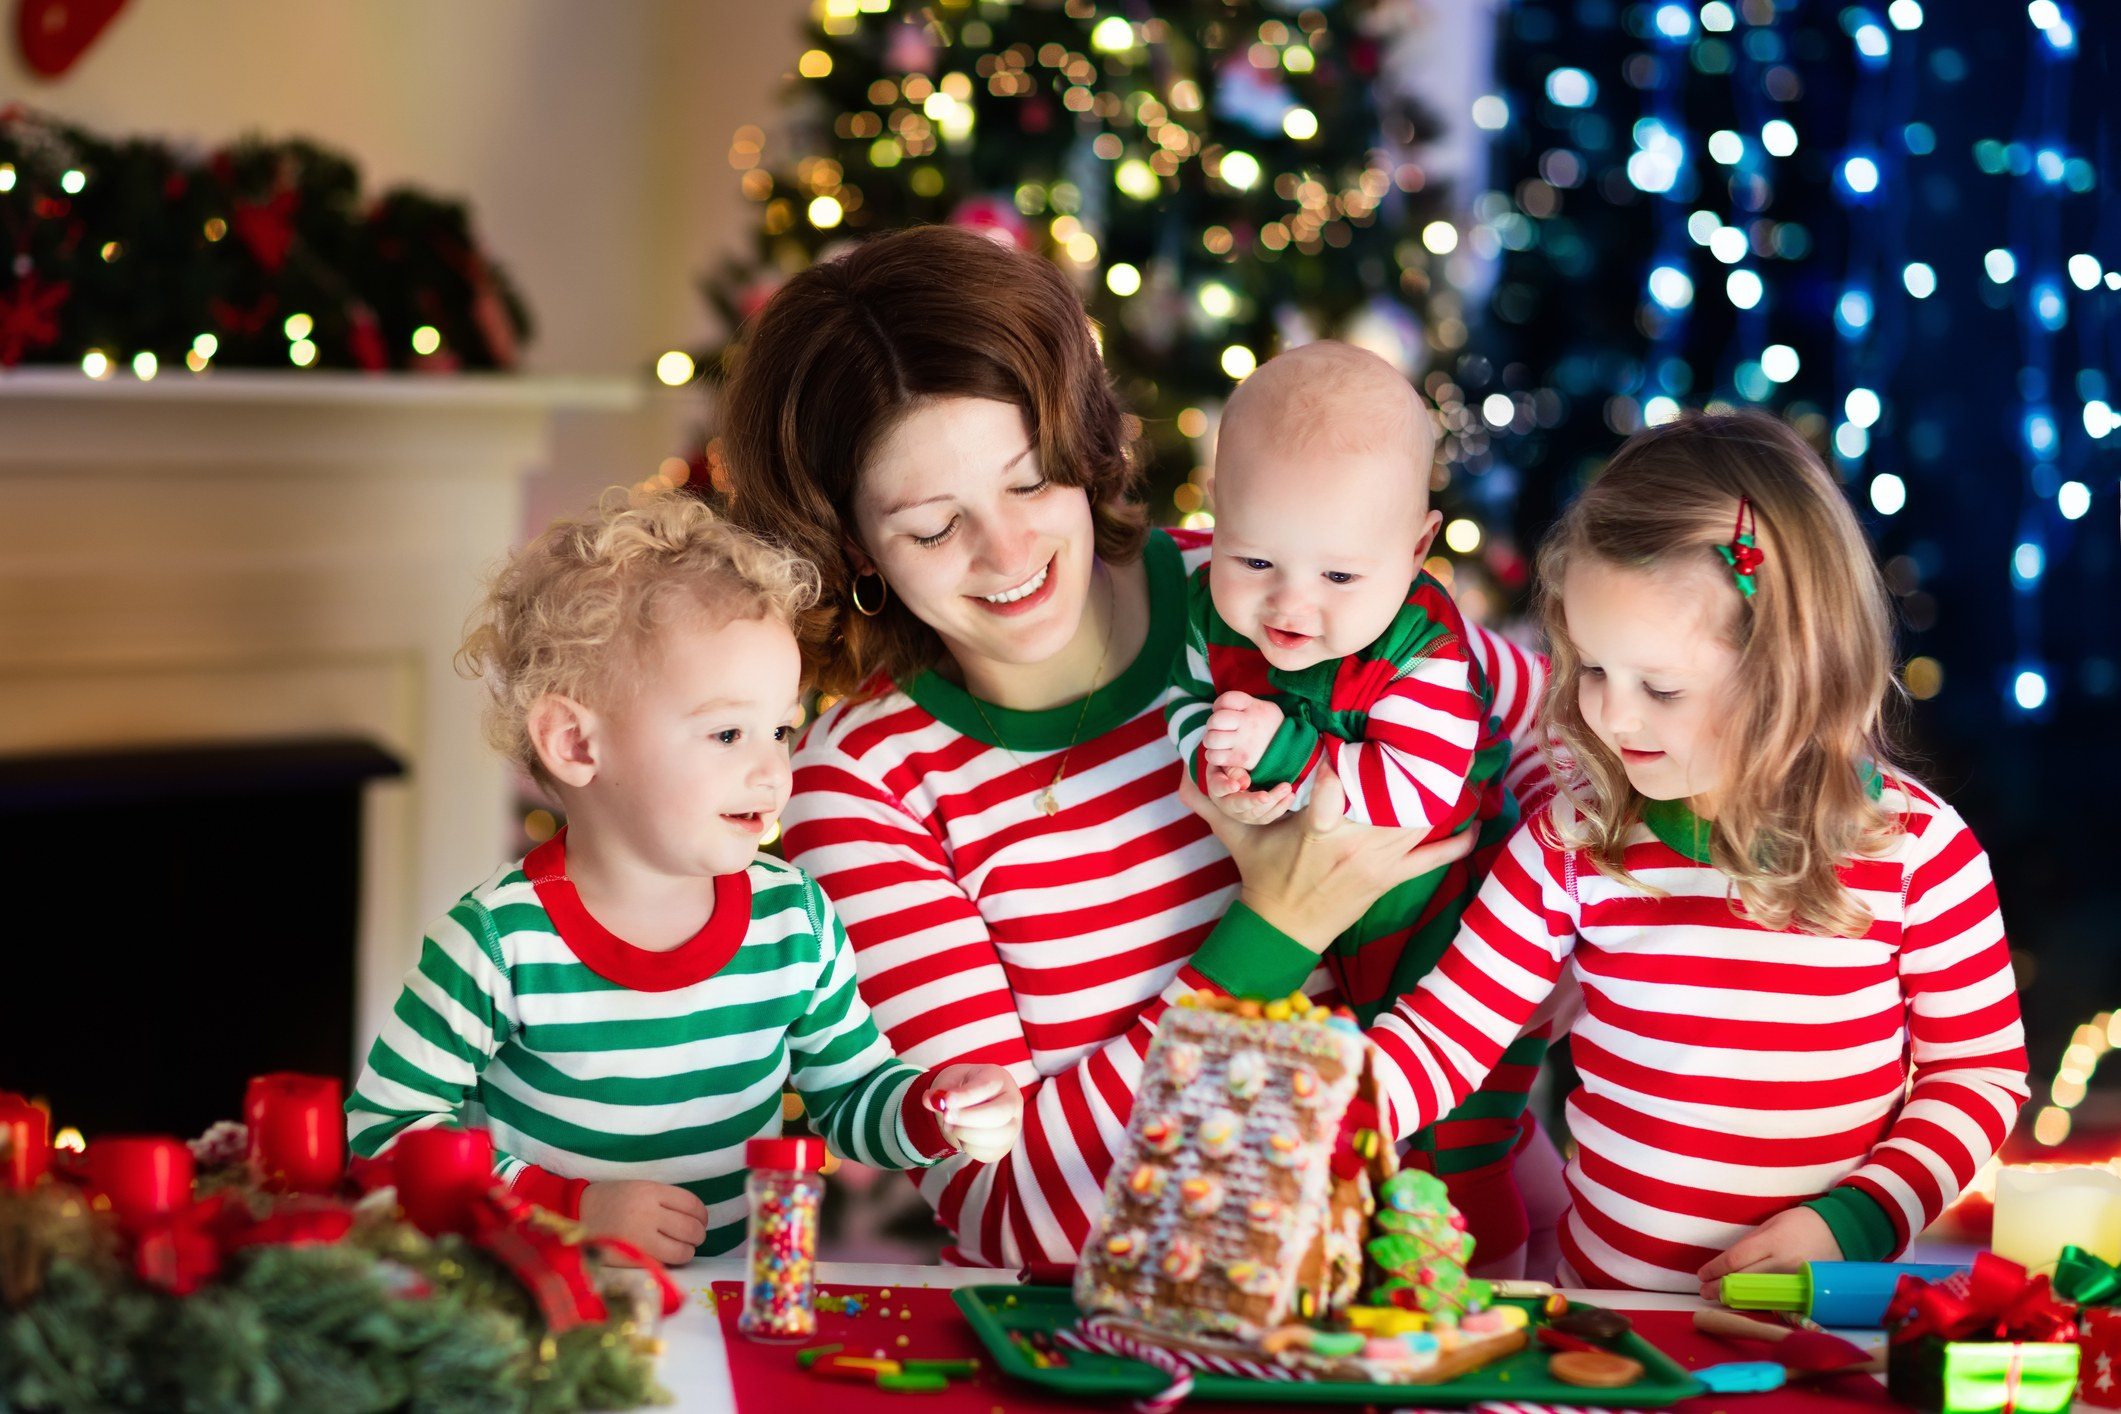 Mother and kids in matching Christmas pajamas